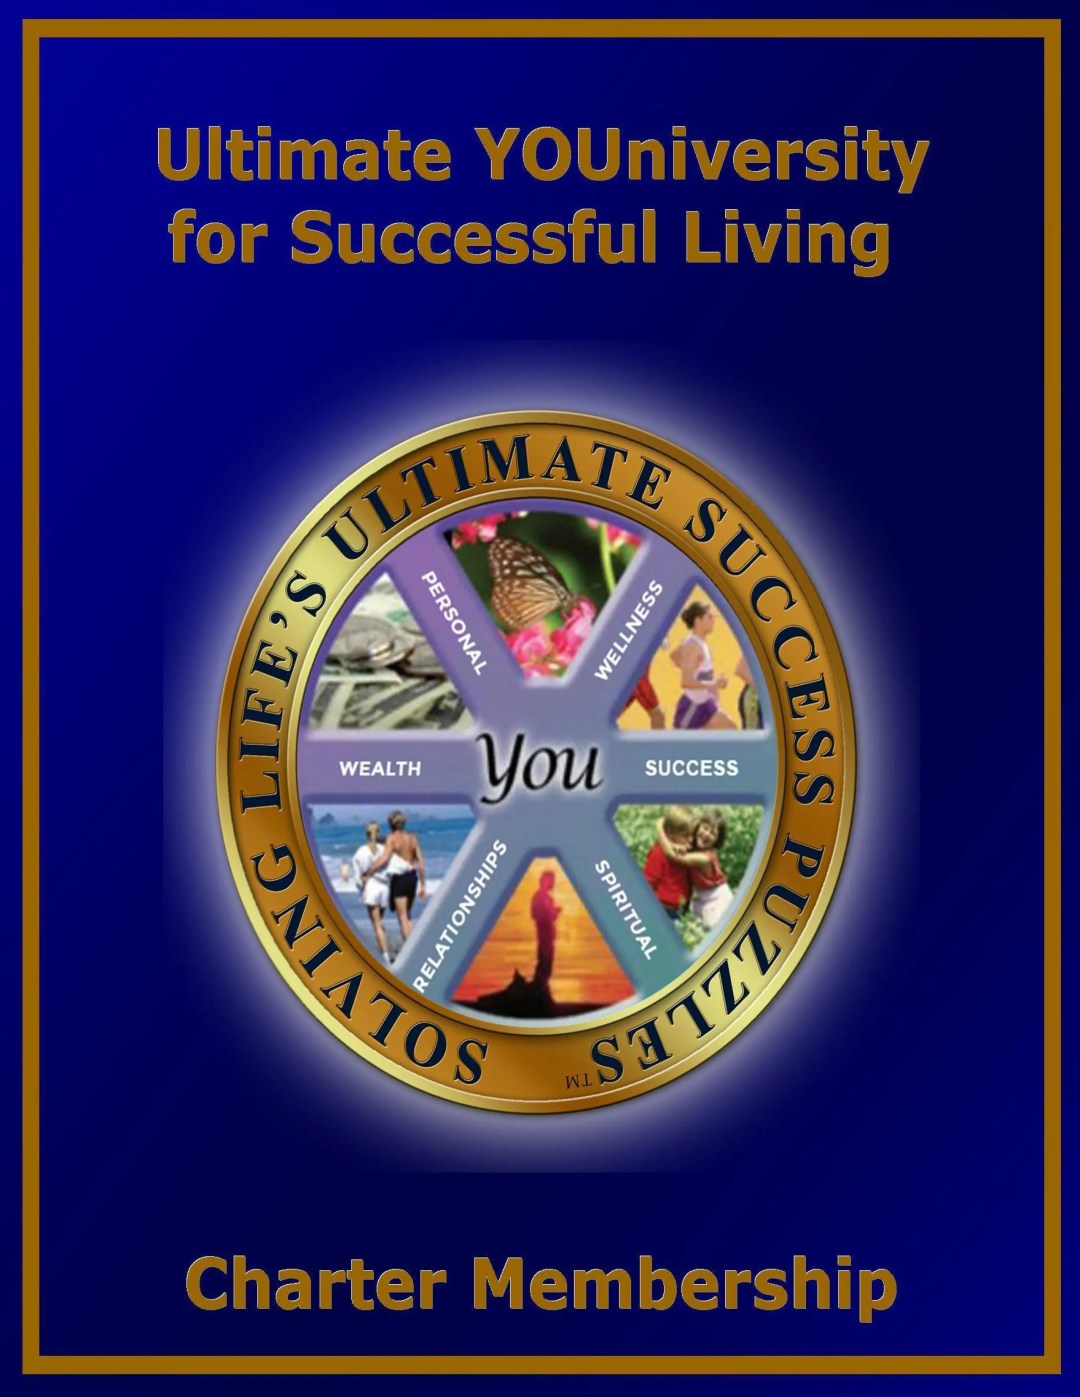 Ultimate YOUniversity for Successful Living Charter Membership Categories